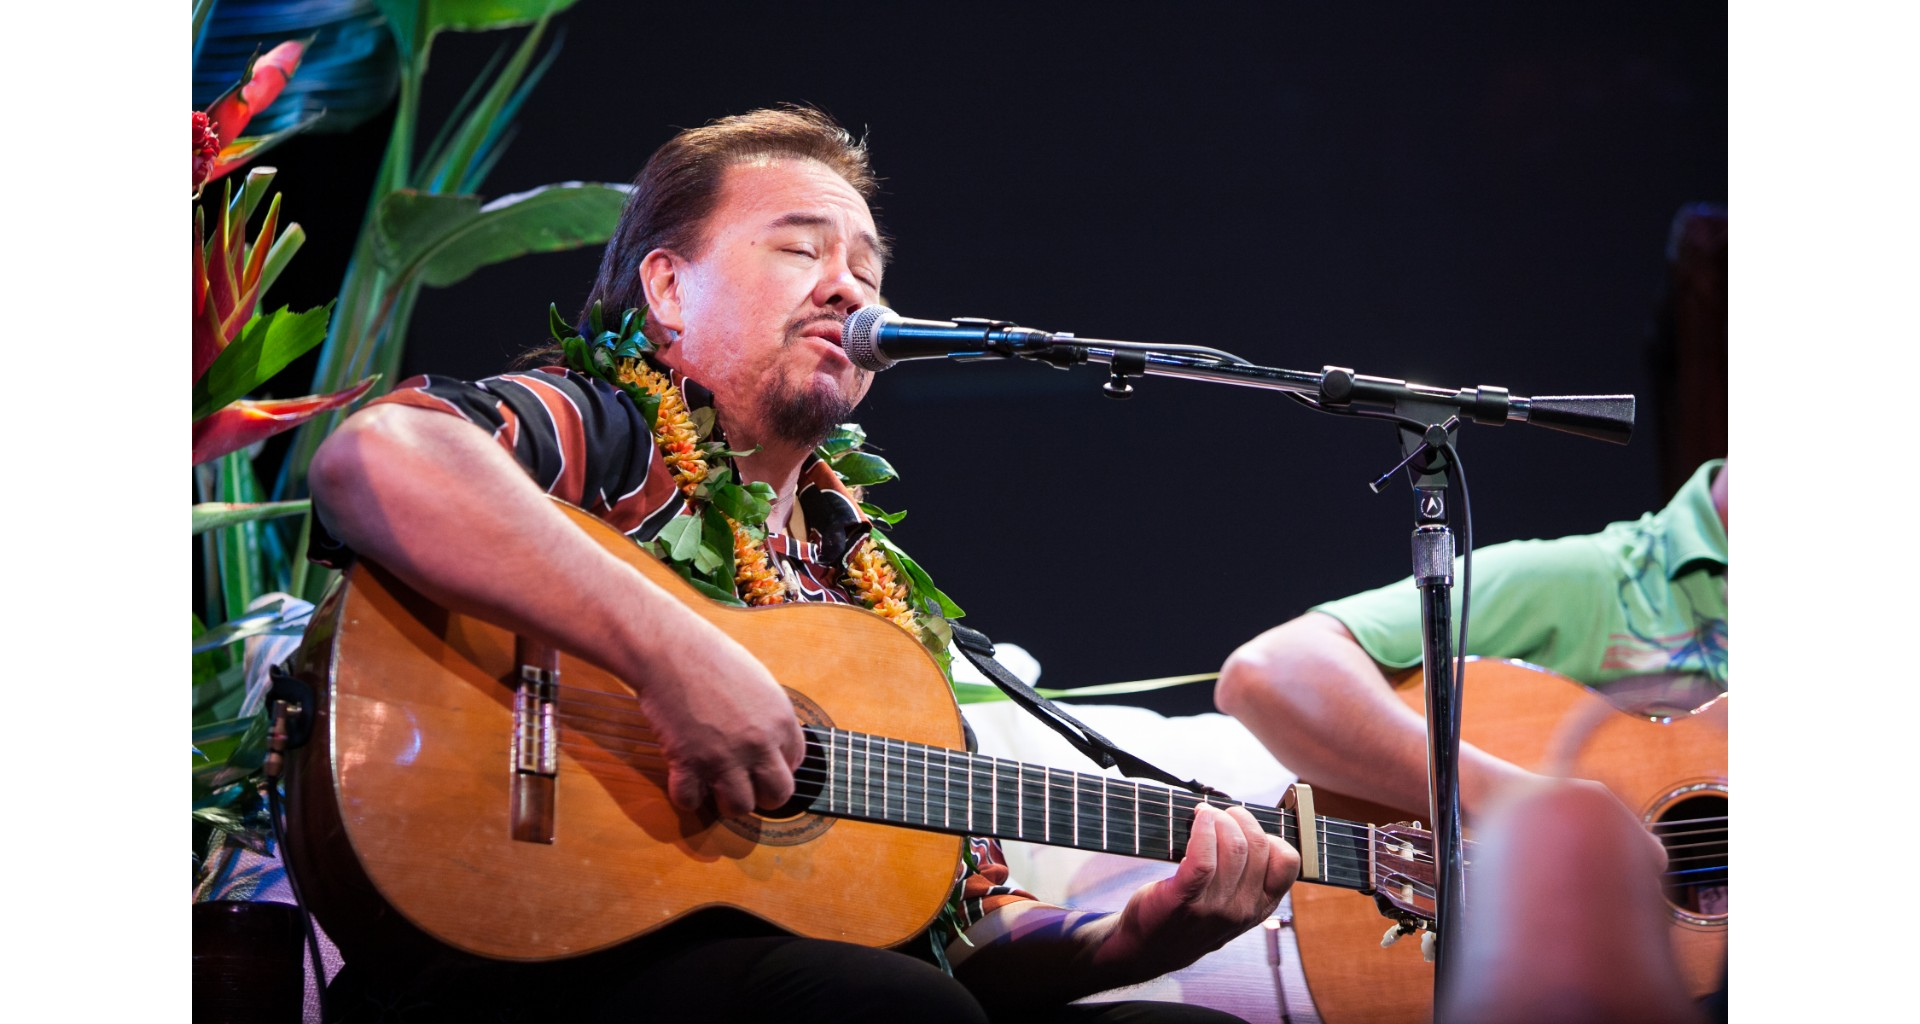 Ride the wave: the 10th Annual Southern California Slack Key Festival in Redondo Beach